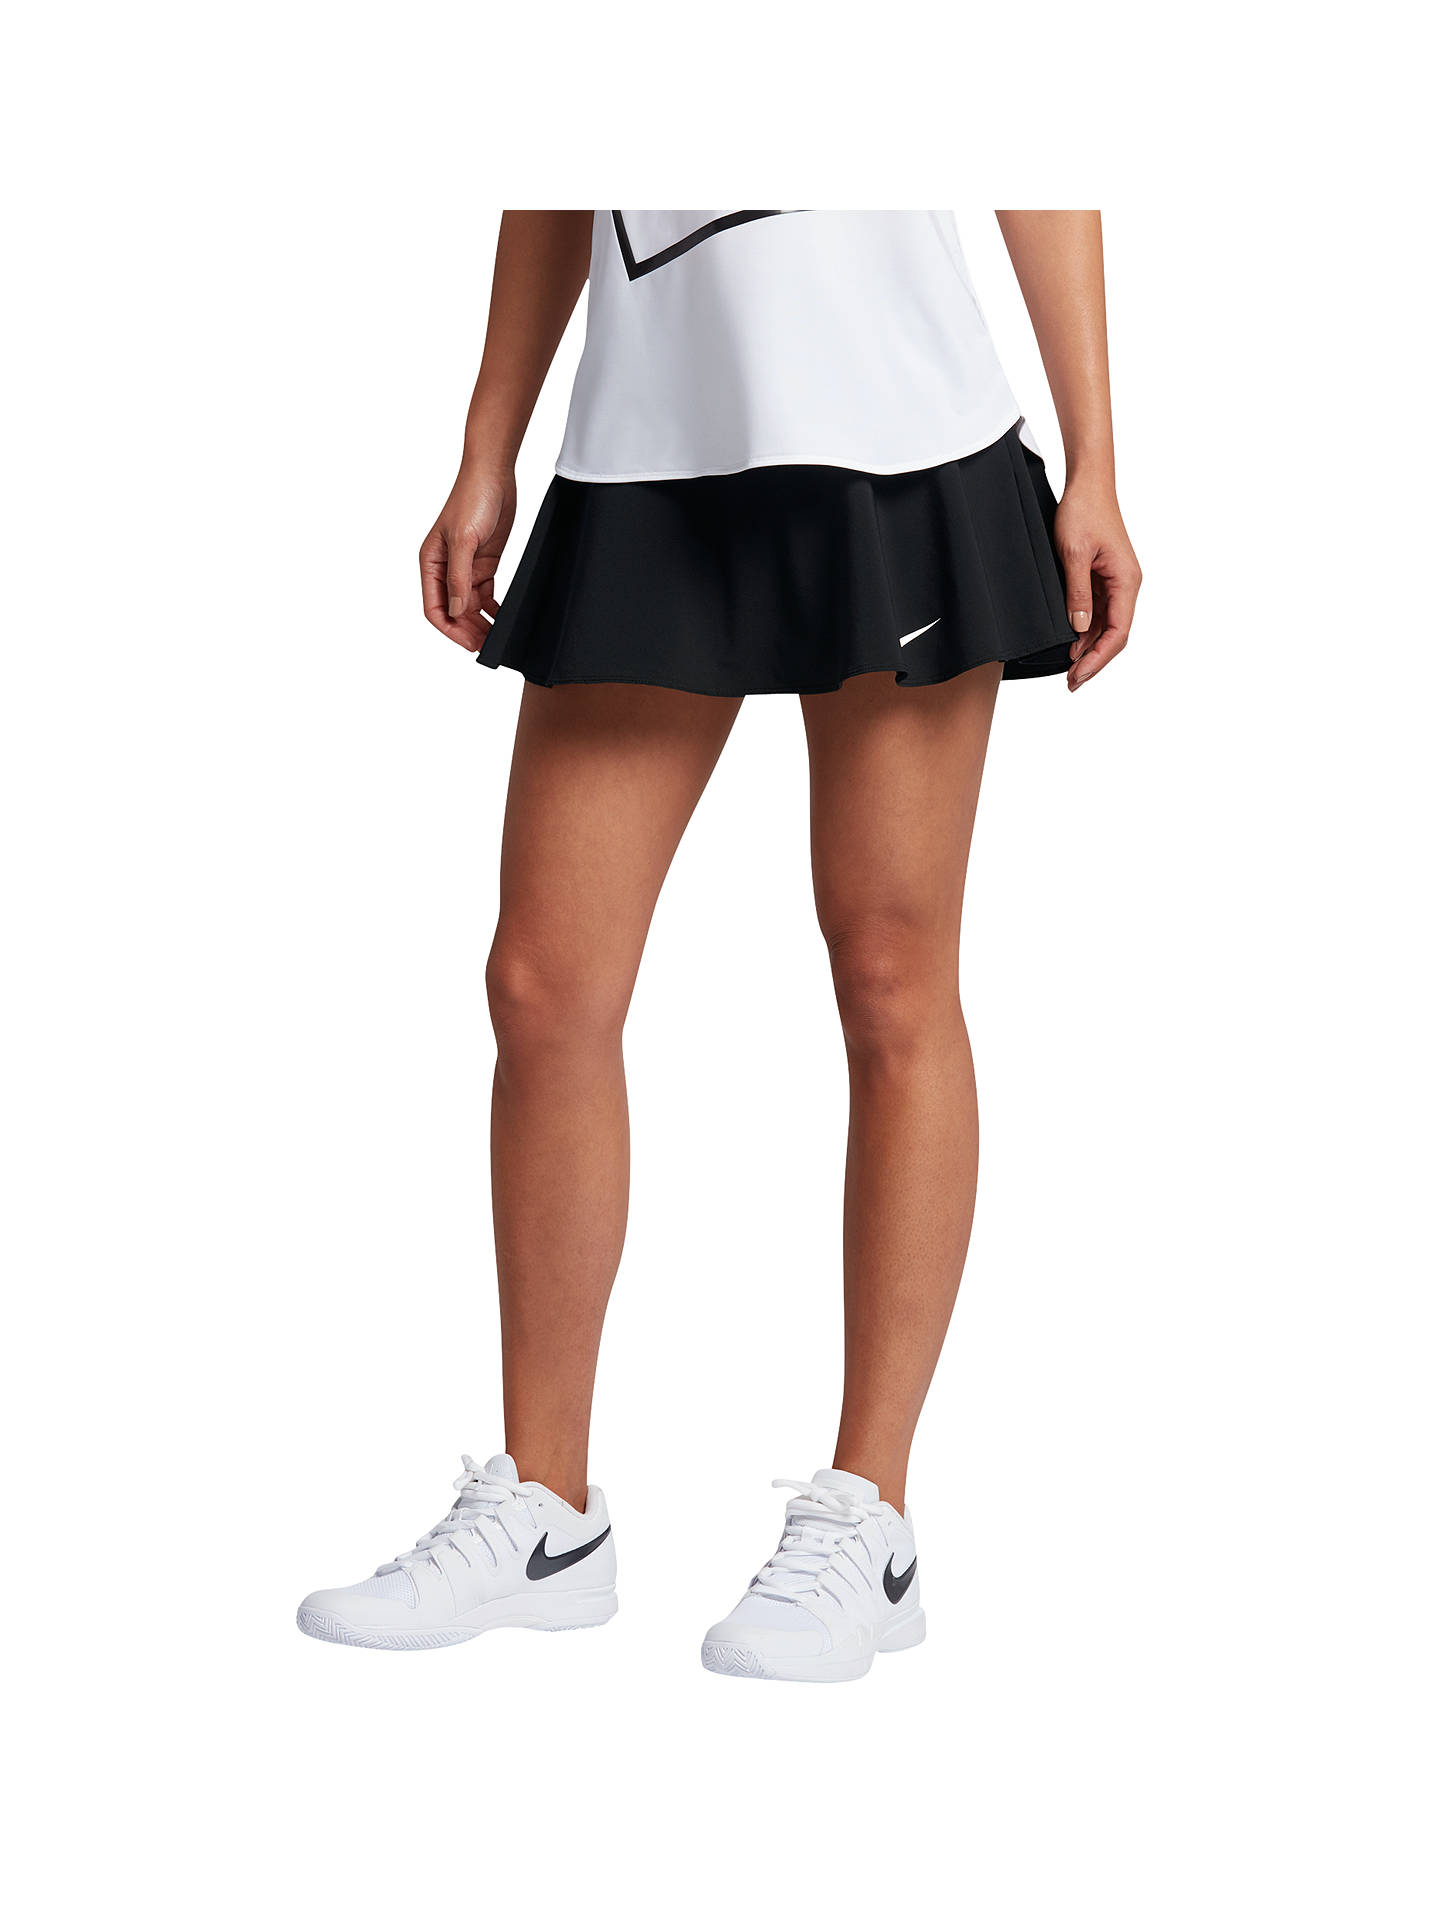 94a07bdfd902 Nike Court Pure Tennis Skirt at John Lewis   Partners